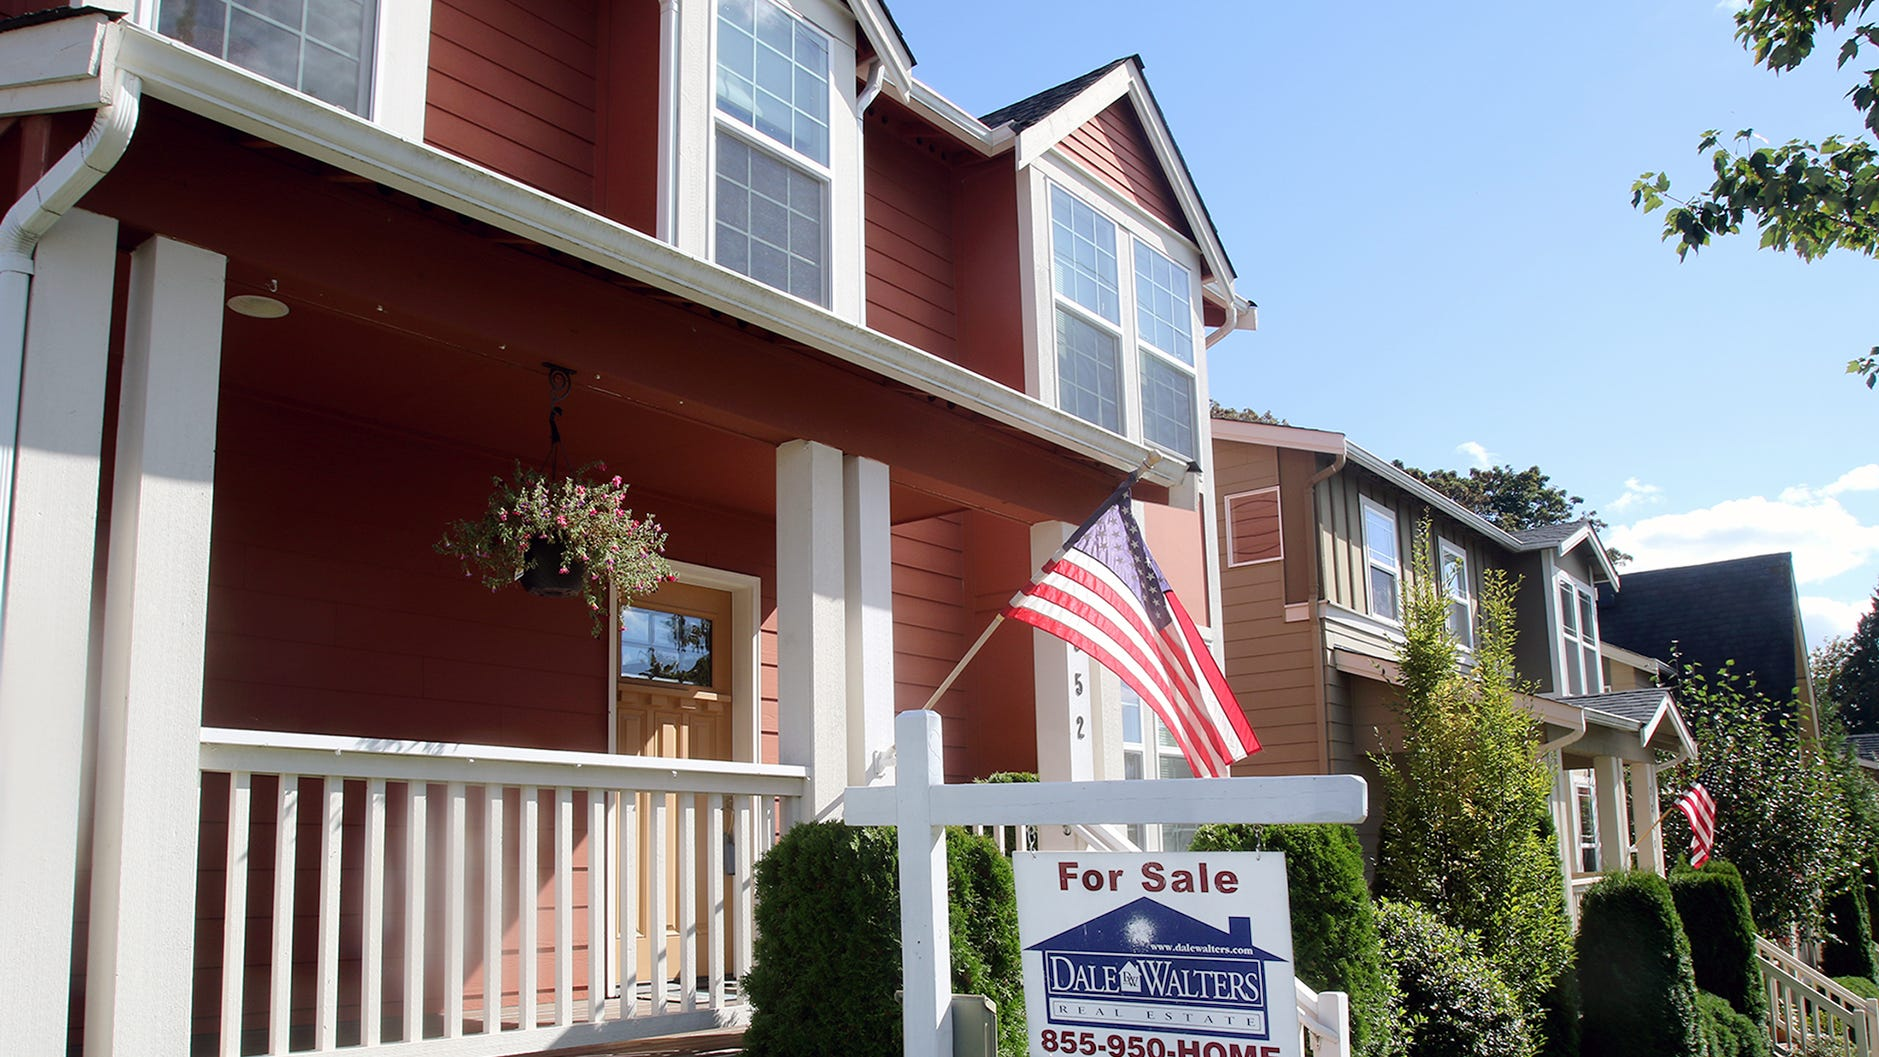 Home prices are still high in Kitsap County, but the available supply has increased in the past couple months.This home is for sale on Schley Blvd in East Bremerton.